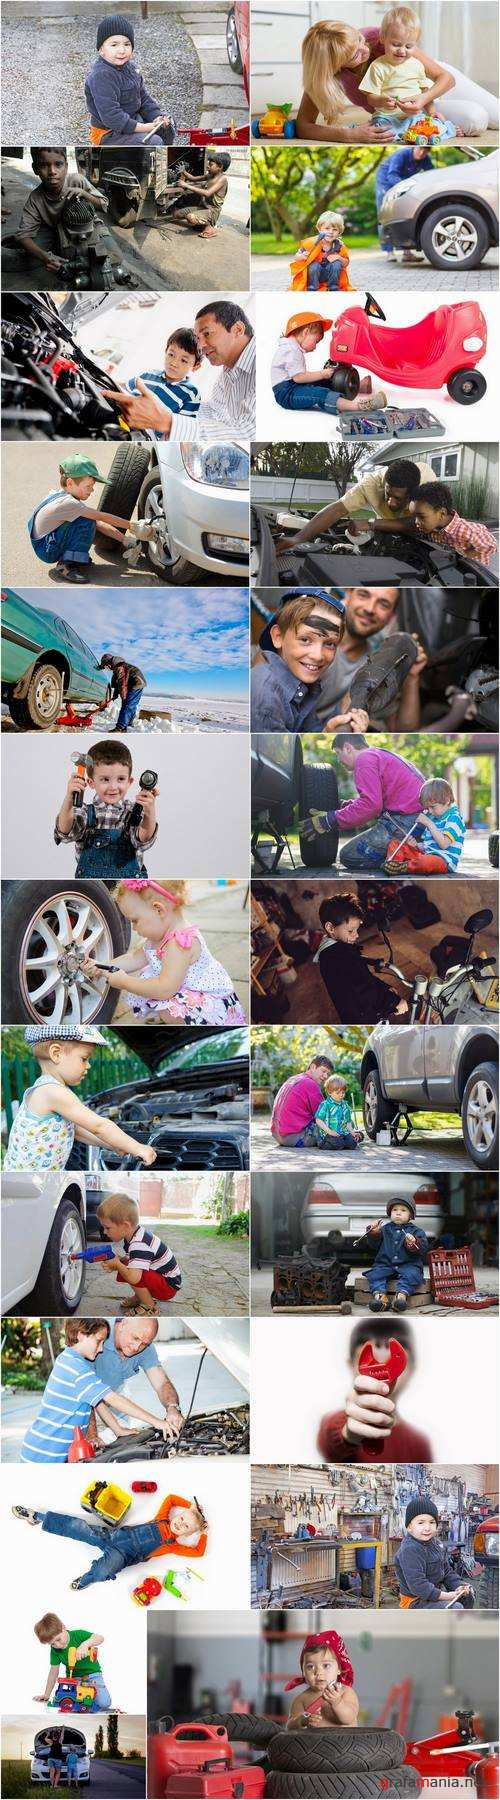 Baby mechanic body shop car repair bicycle tool breakage fault 25 HQ Jpeg